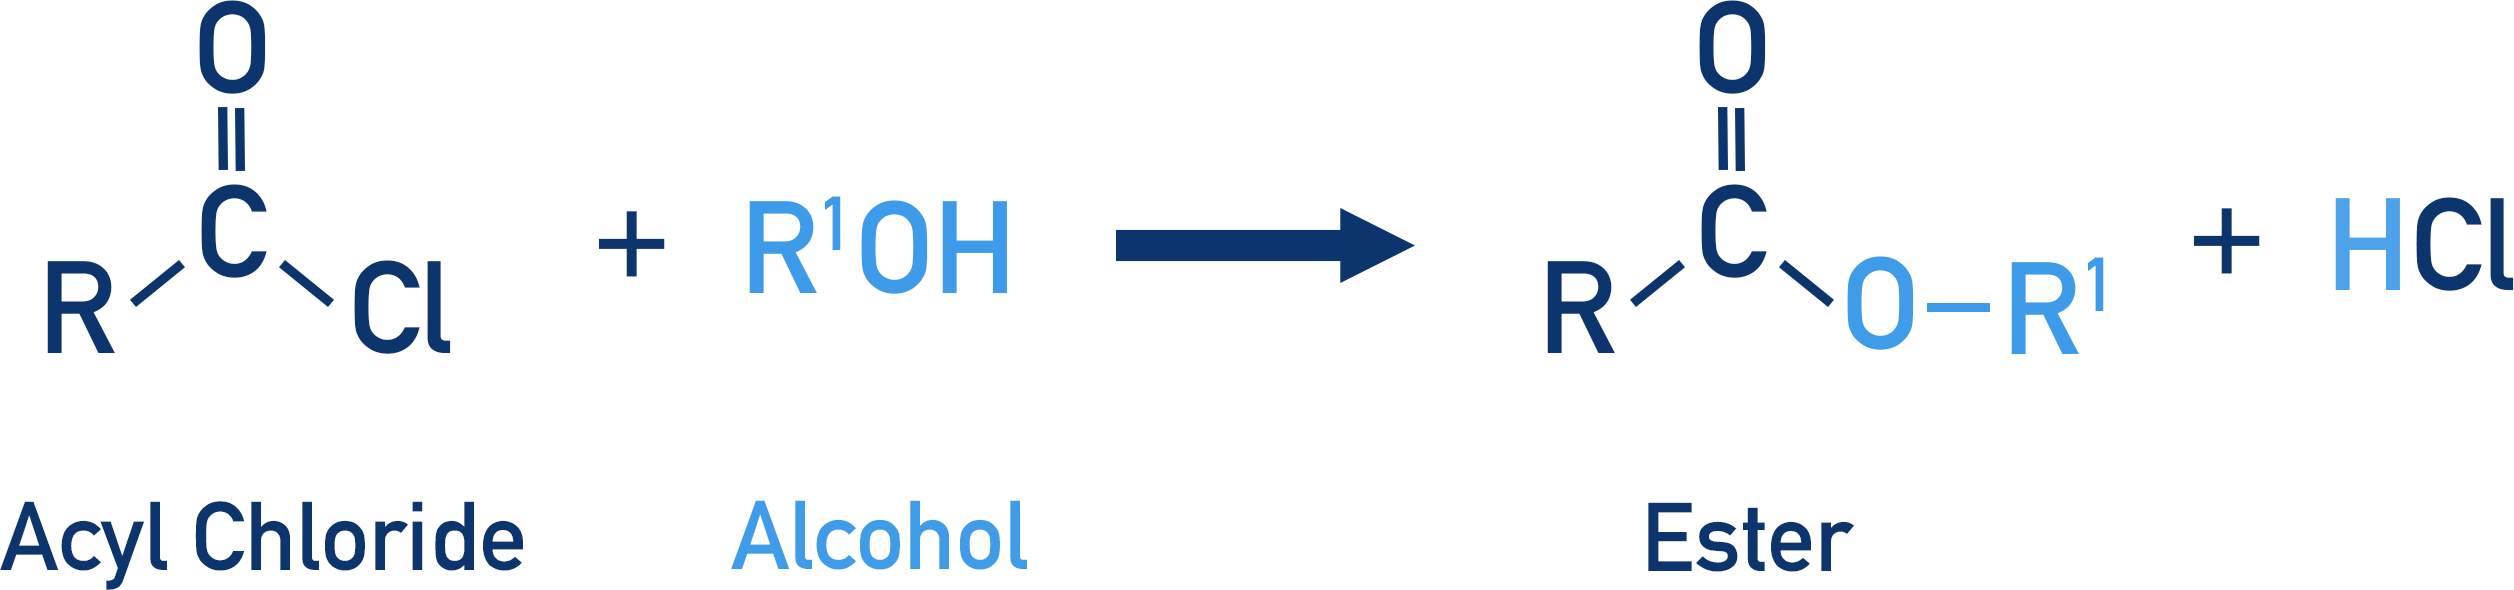 acyl chloride with alcohol reaction to form ester